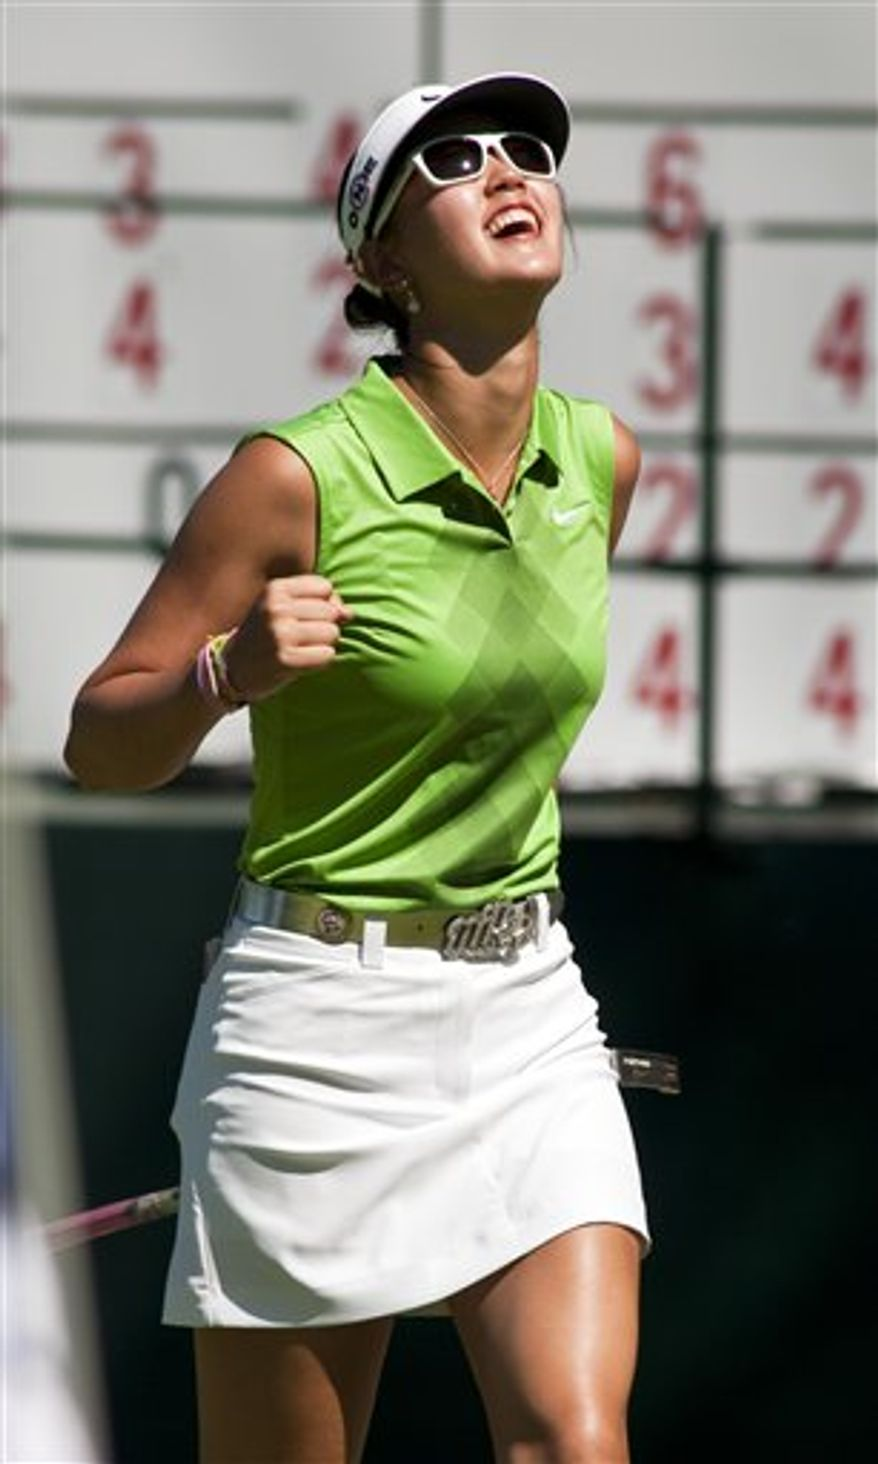 Michelle Wie, right, watches her shot off the third tee as Yani Tseng, left background, looks on during the final round of the P & G Northwest Arkansas Championship golf tournament in Rogers, Ark., Sunday, Sept. 12, 2010. (AP Photo/April L. Brown)